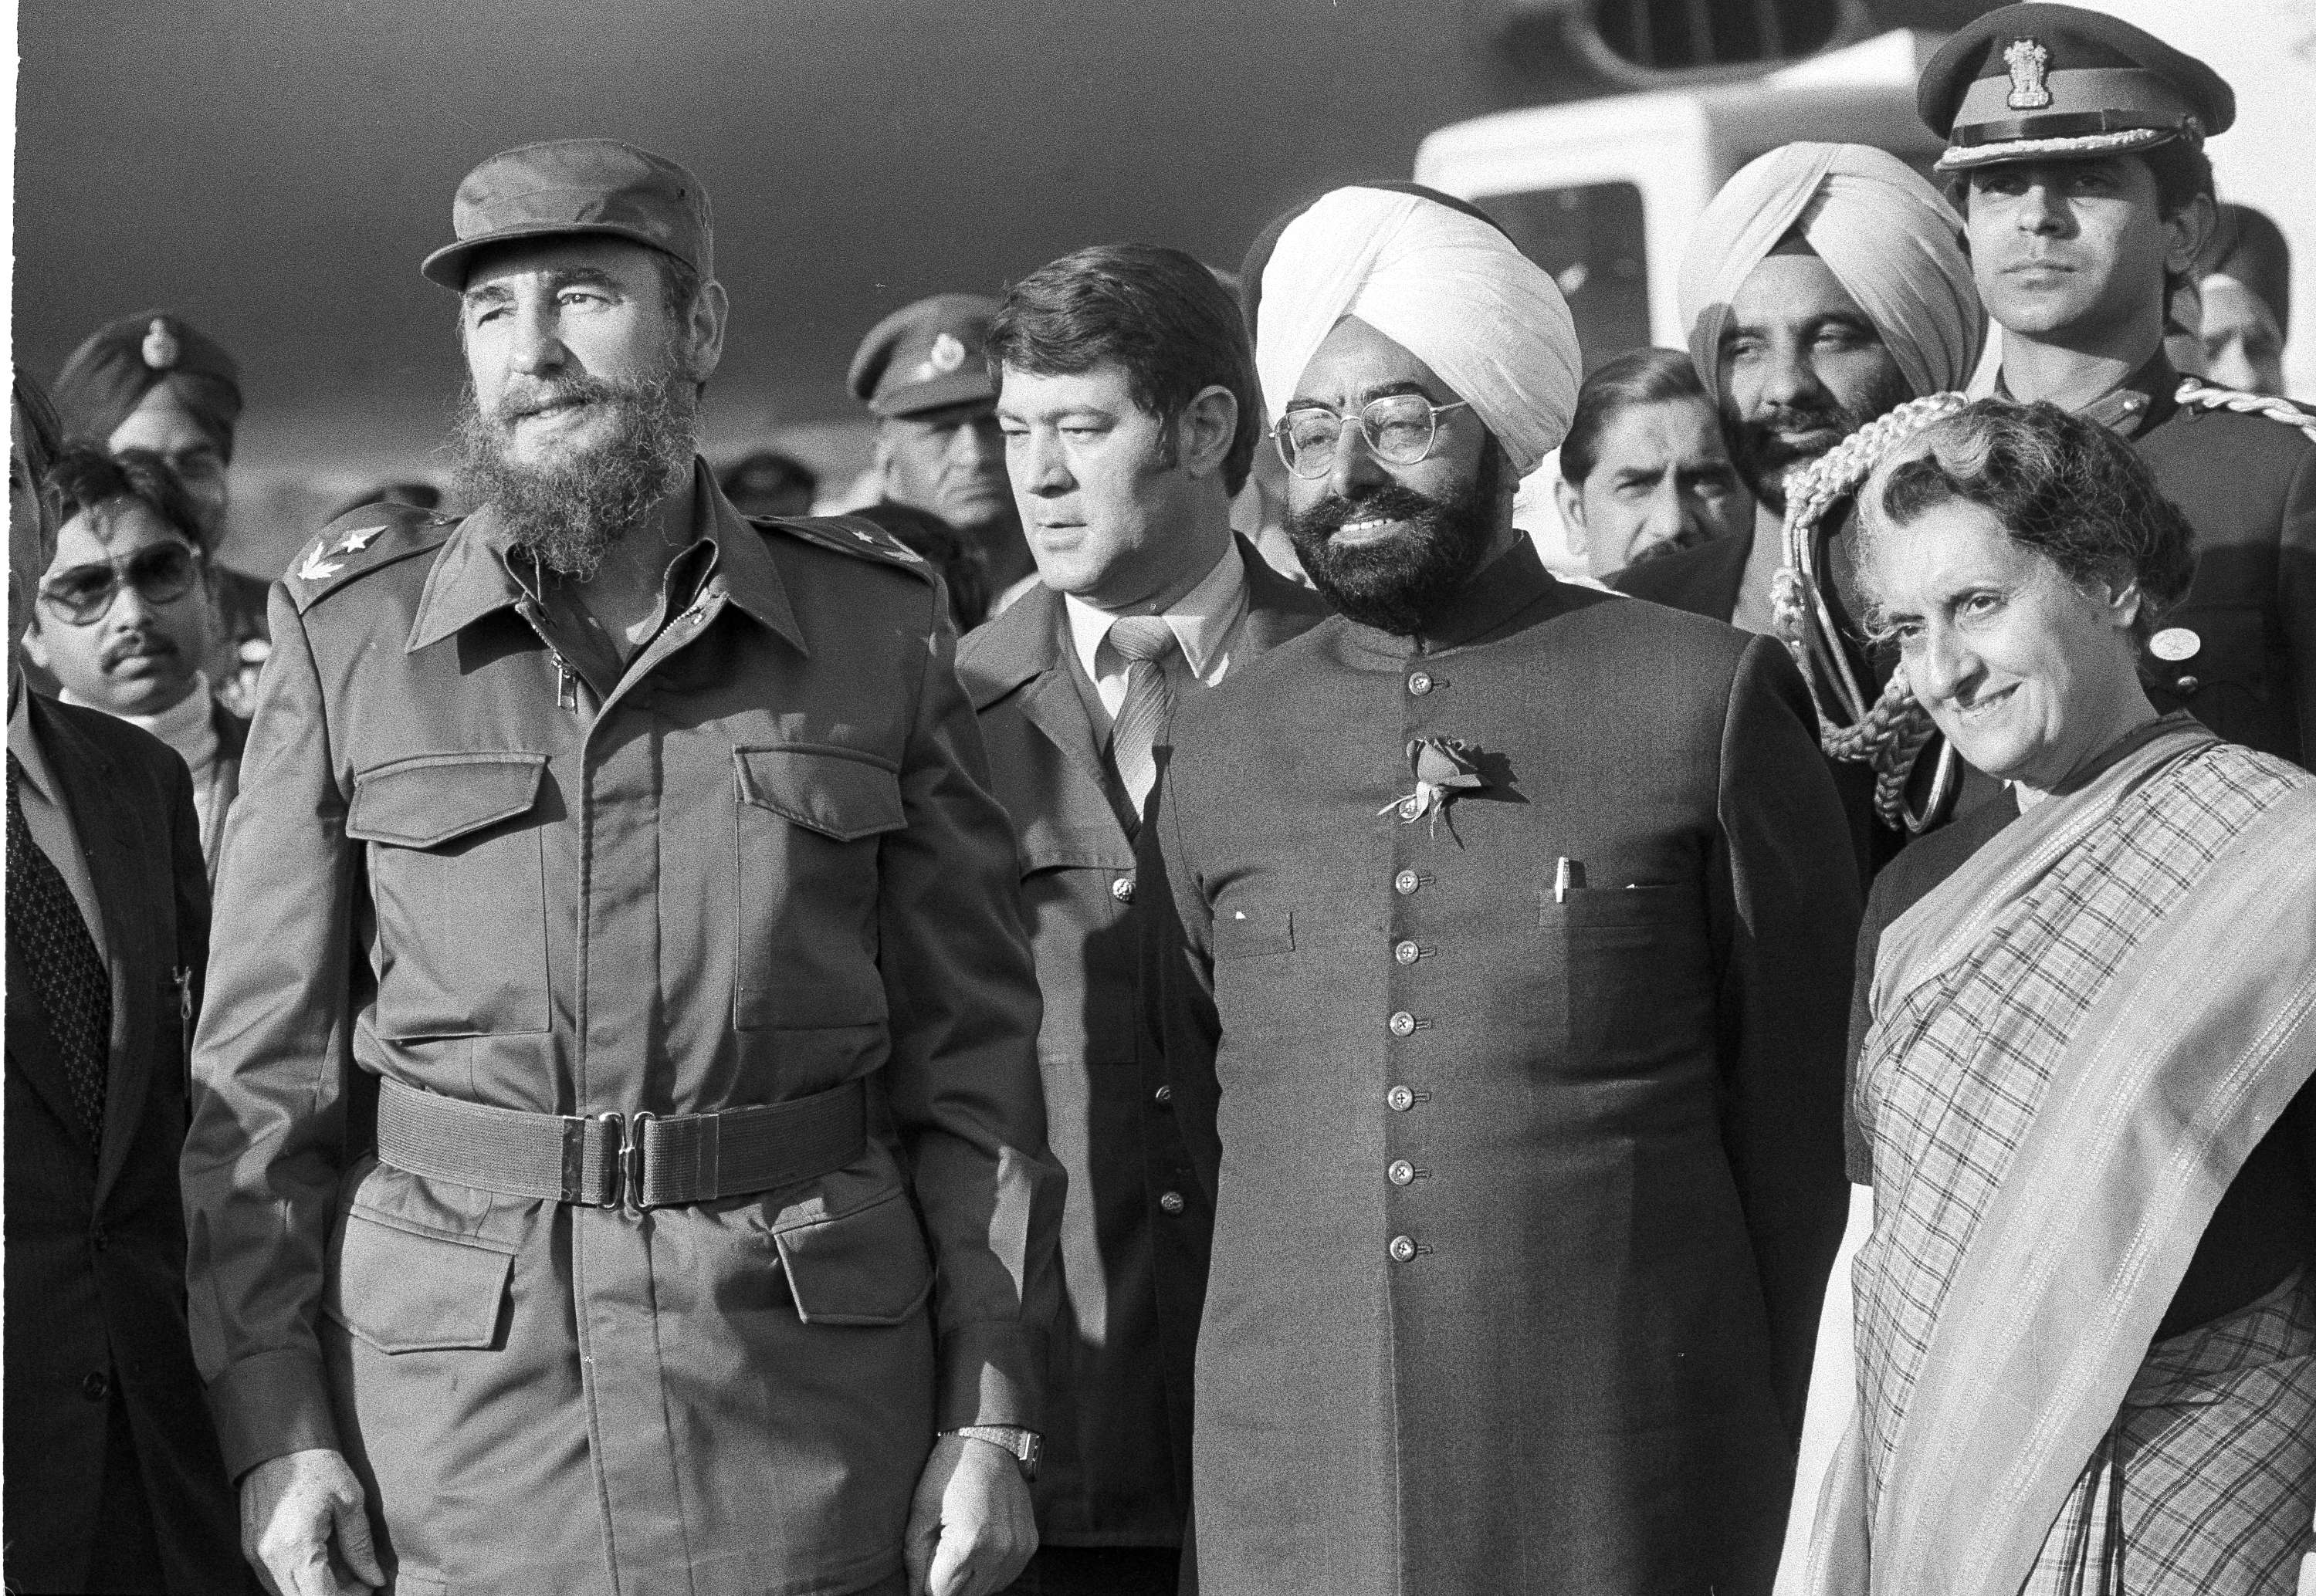 Cuban Prime Minister Fidel Castro, left, Indian President Zail Singh, and Indian Prime Minister Indira Gandhi pose for photographers after Castro arrived in New Delhi, March 6, 1983.